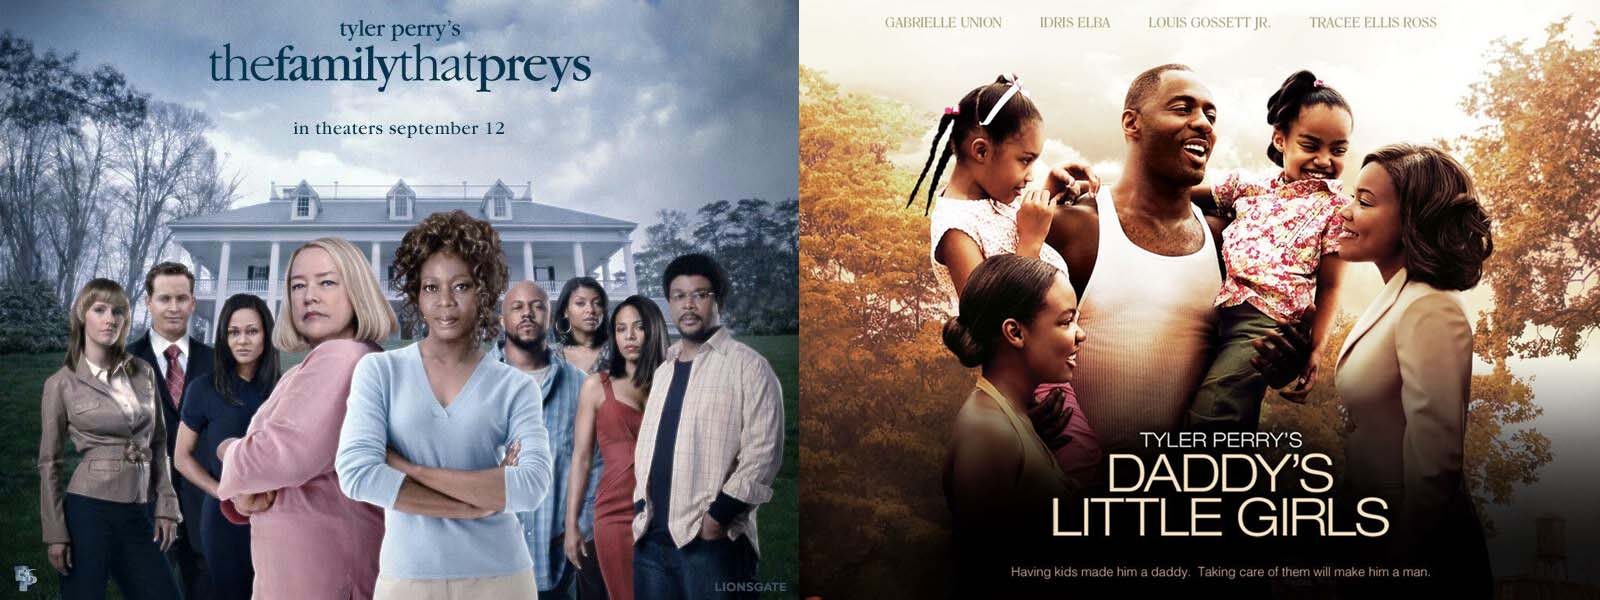 Tyler Perry movies: Ranking the absolute worst to the very best – Film Daily